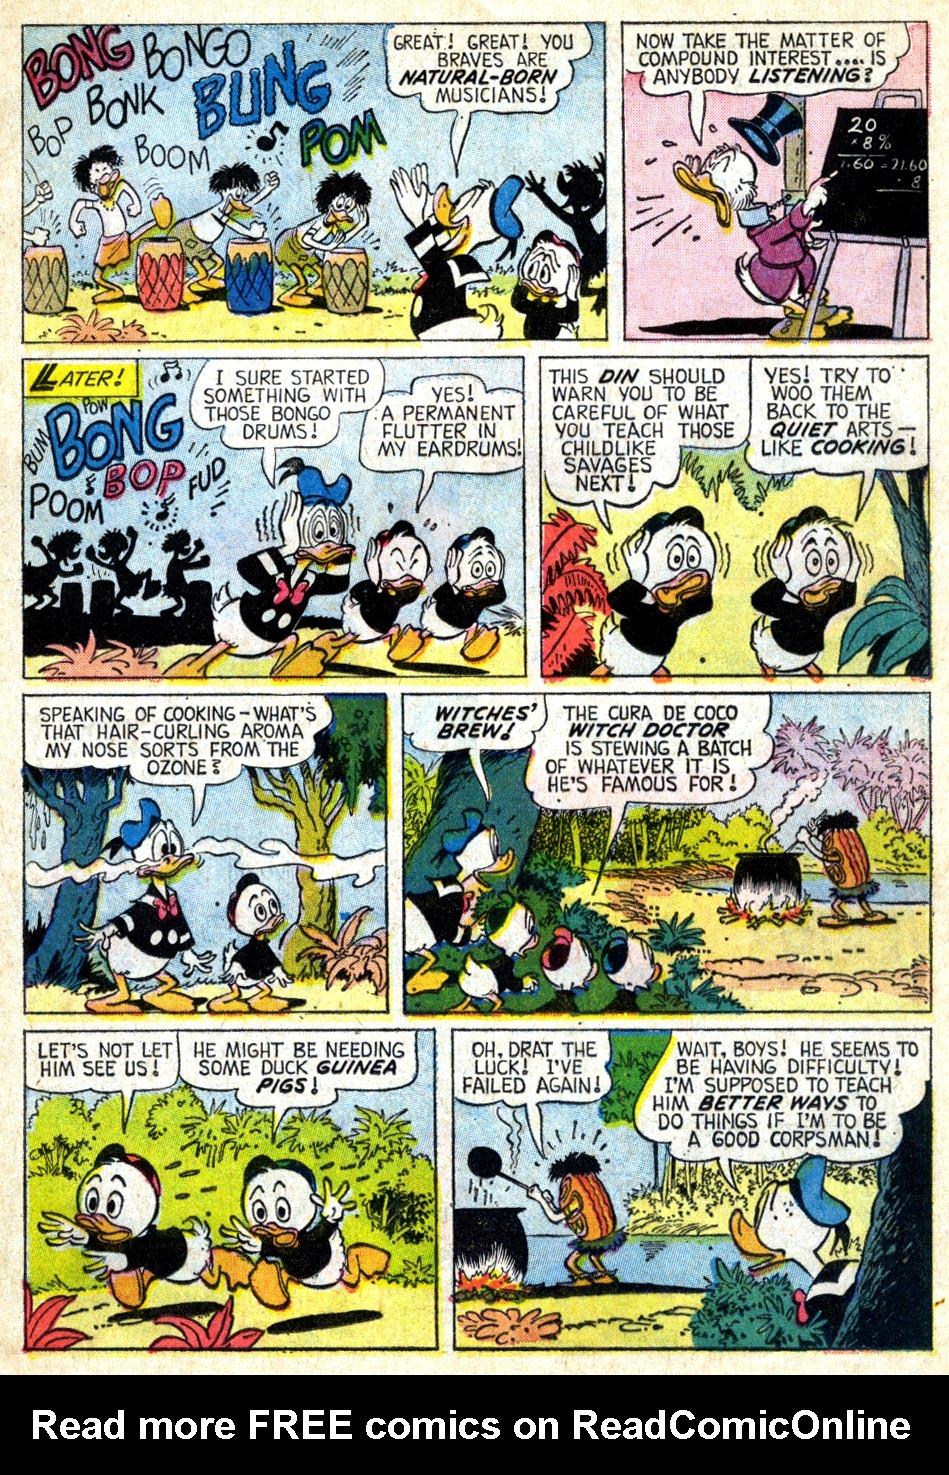 inefree.com/uncle-scroog #366 - English 13